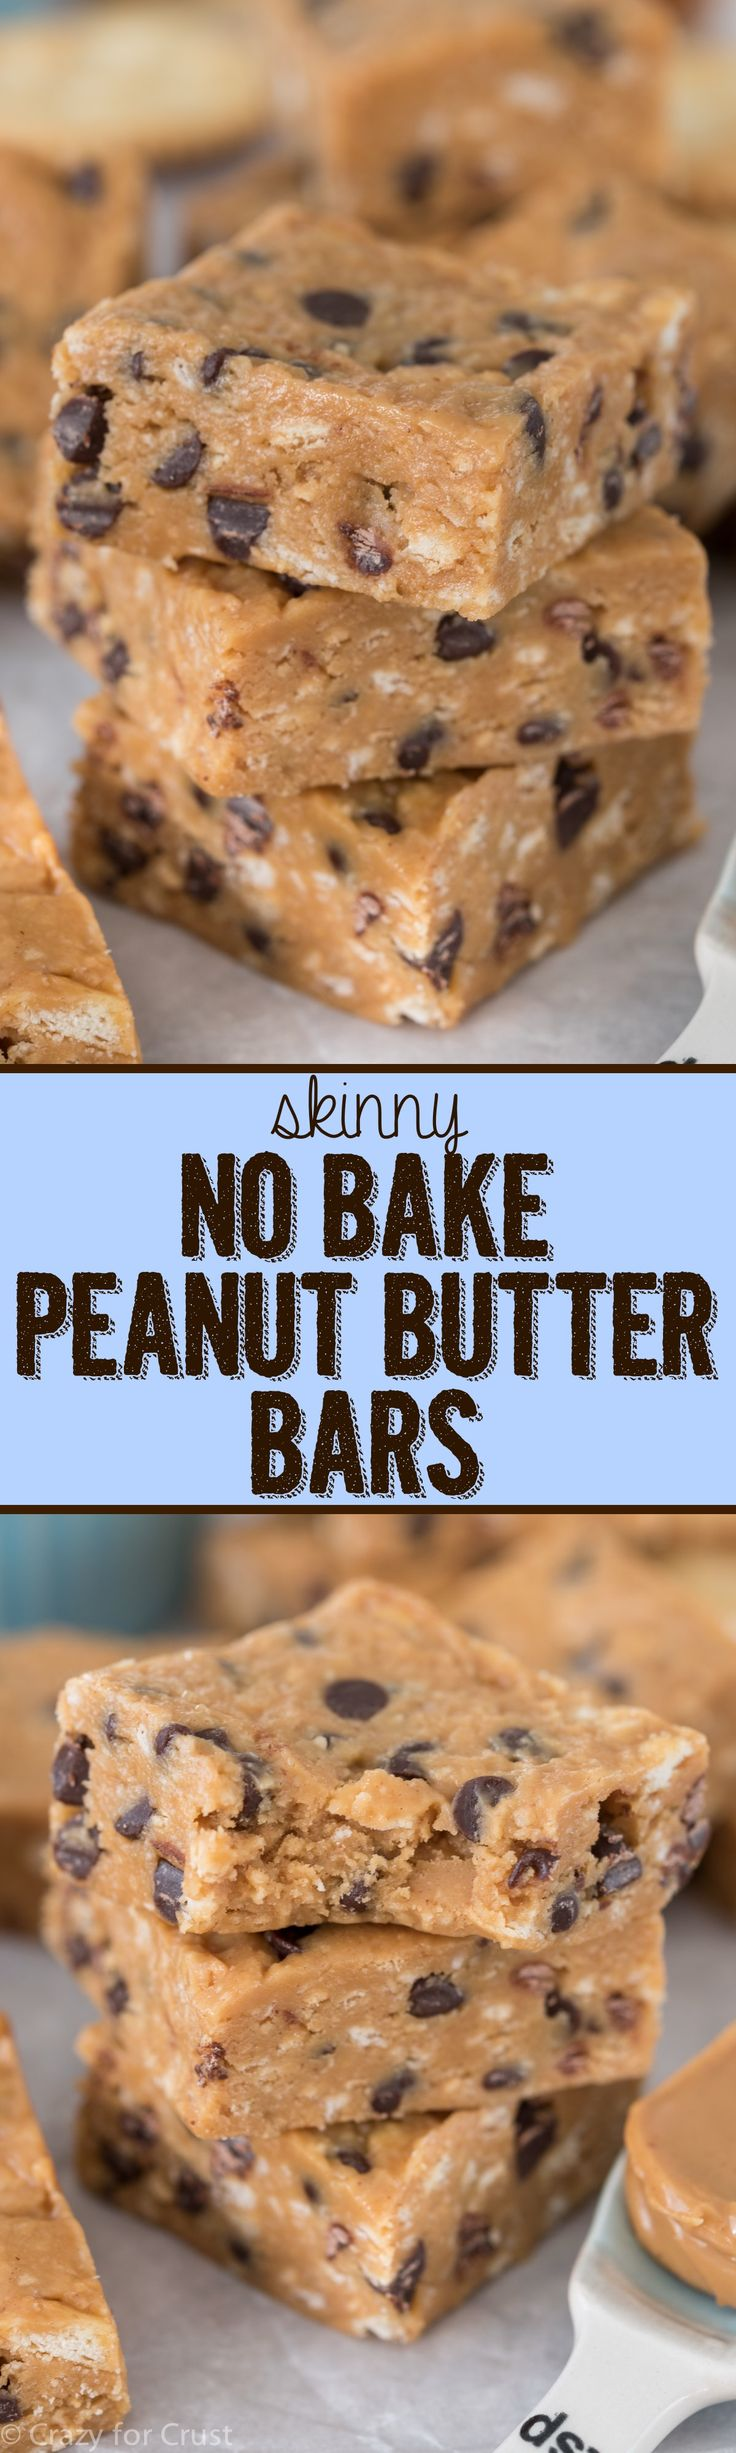 Skinny No Bake Peanut Butter Bars